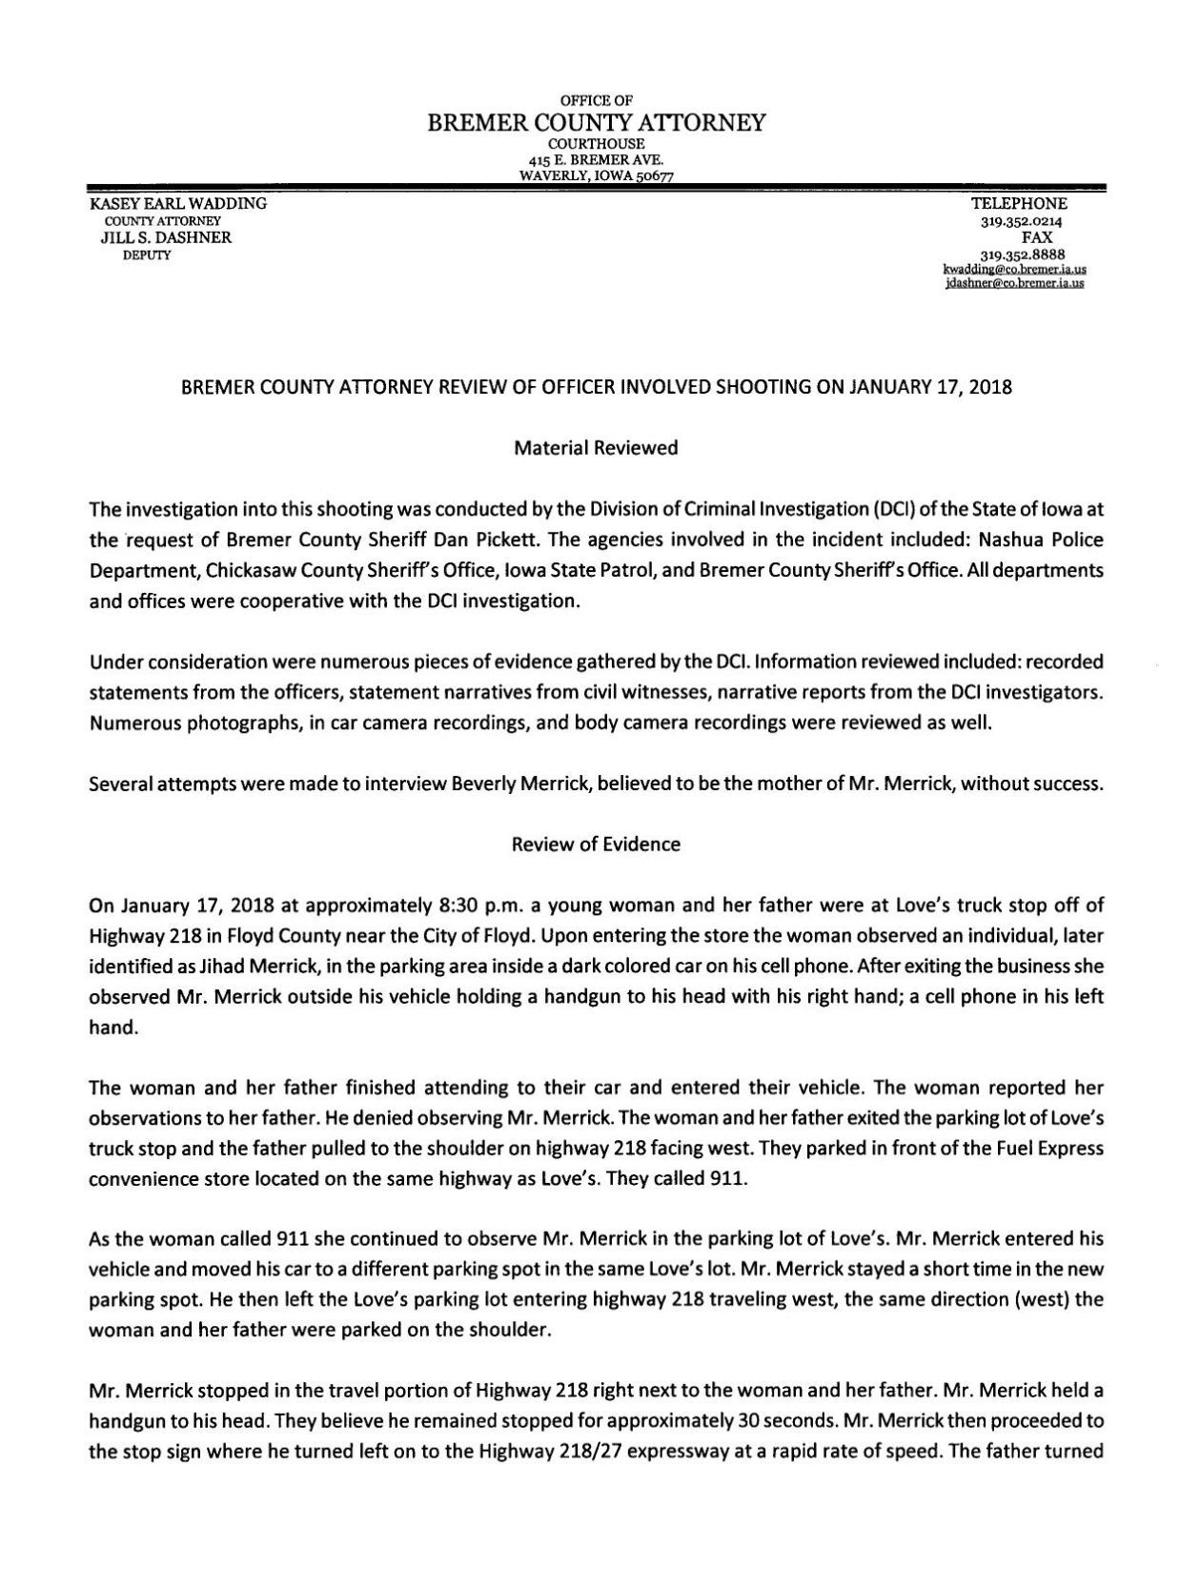 PDF: Read the Bremer County Attorney's findings